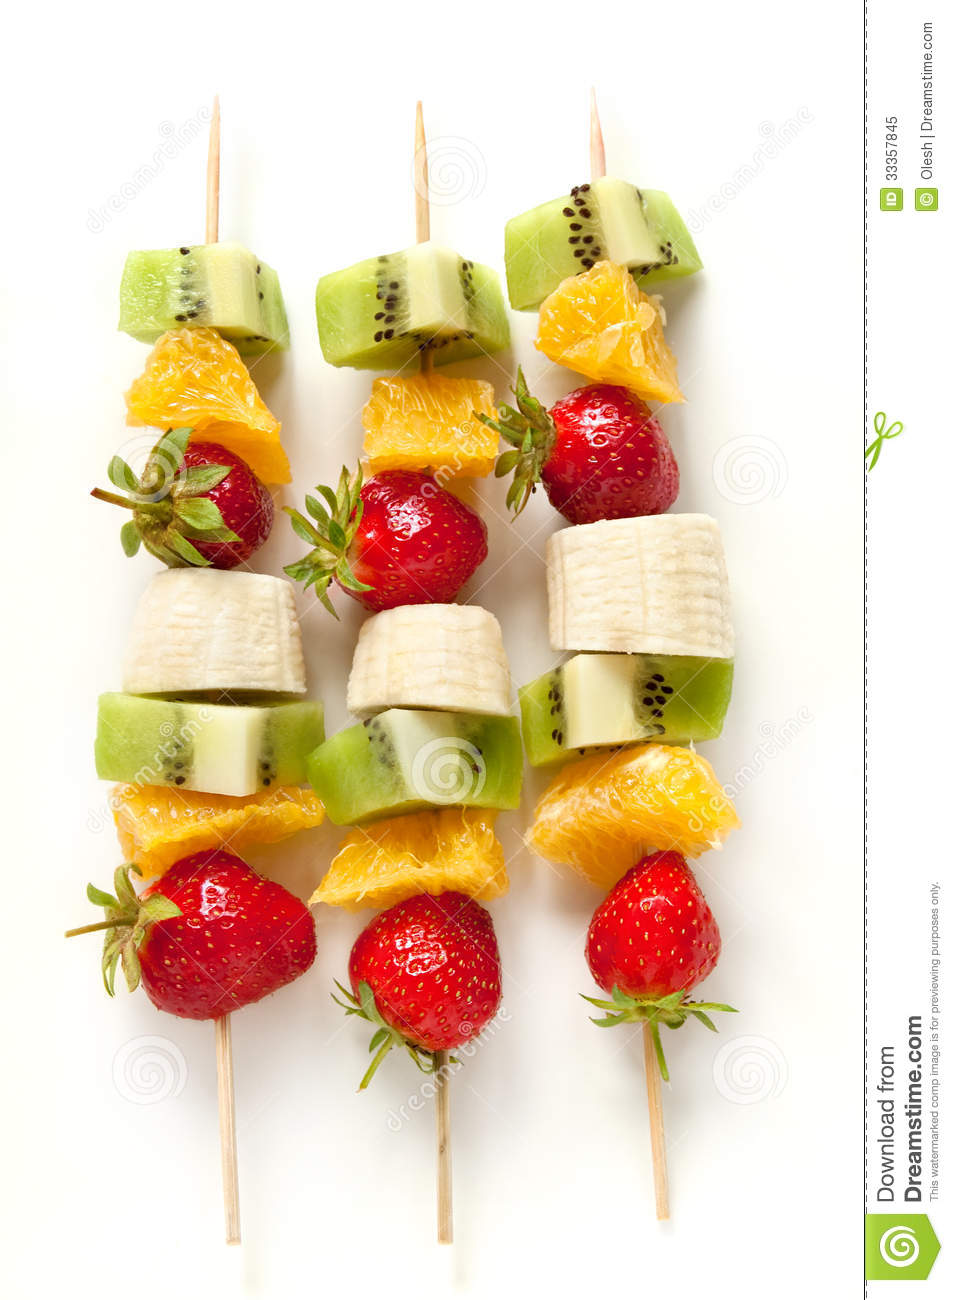 Fresh Fruit On The Skewers Royalty Free Stock Photo - Image: 33357845